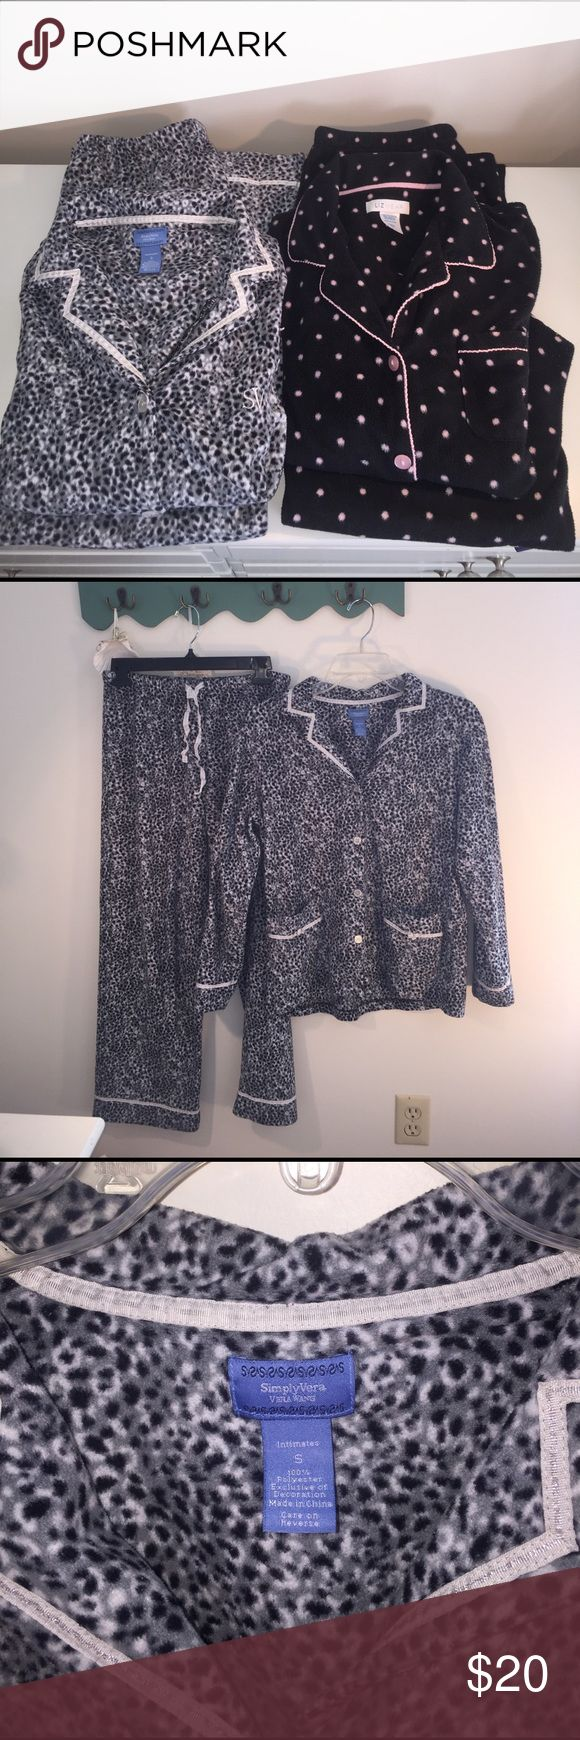 Pajama Bundle Small 2 Pair Designer Super Cozy Pajama Bundle Small 2 Pair Designer Super Cozy & Warm 100% Polyester Fleece Feel. Grey & Black Animal Print with Ribbon Detail By Simply Vera Vera Wang & Black & Pink polka dot by Liz Wear Simply Vera Vera Wang Intimates & Sleepwear Pajamas